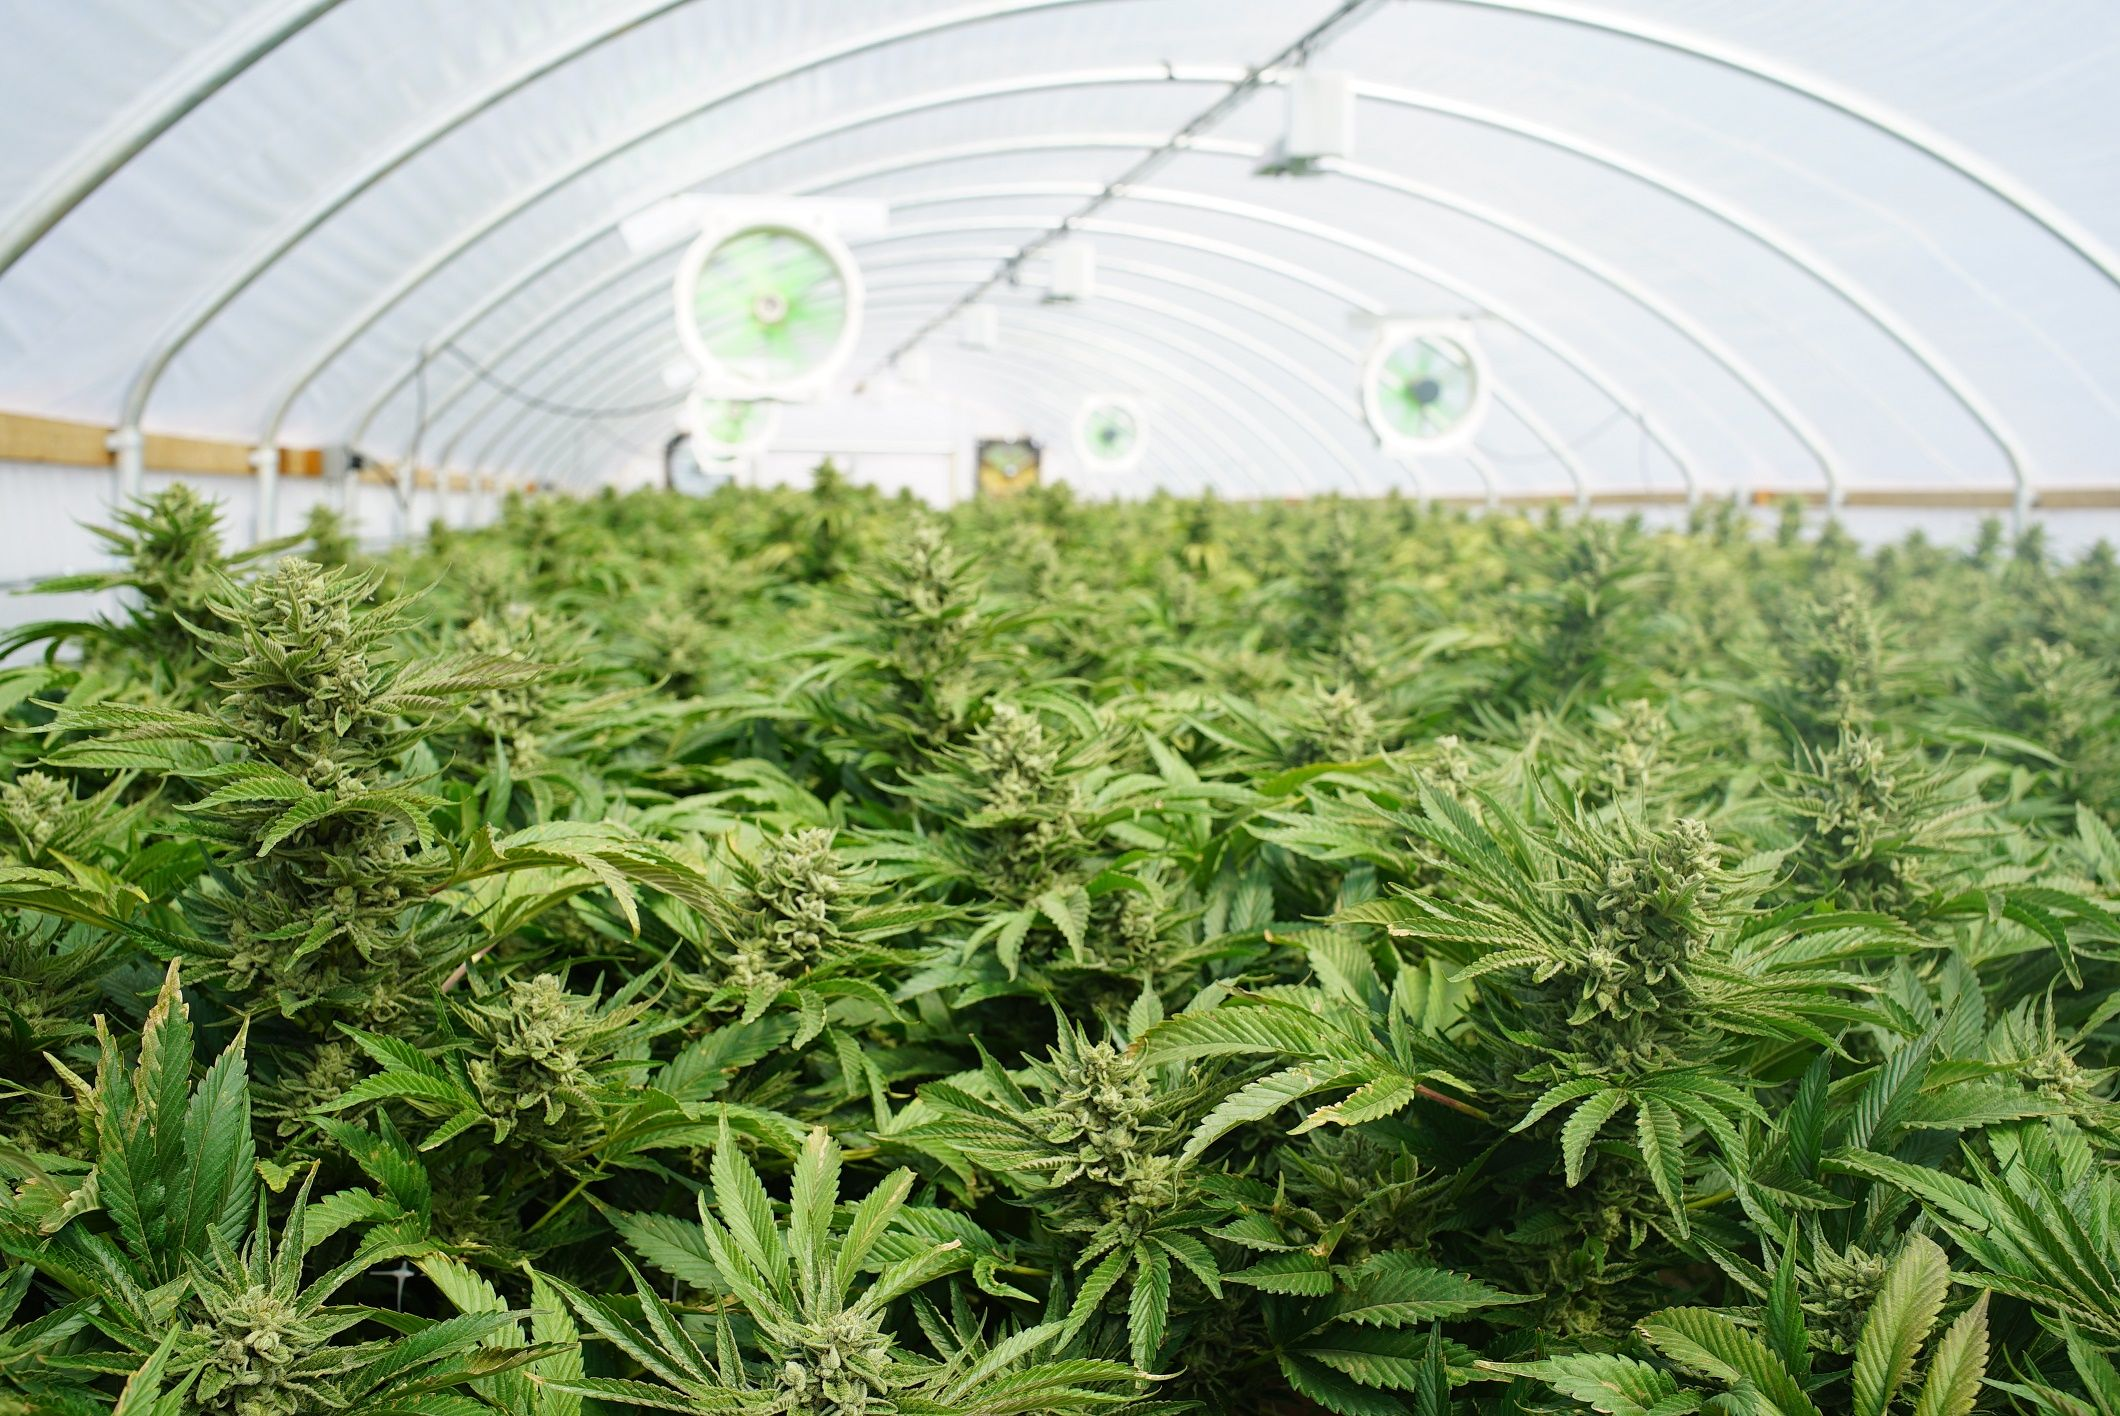 Aurora Cannabis International Operational Update: Company Ships Mother Plants to Denmark to Populate Aurora Nordic Phase I